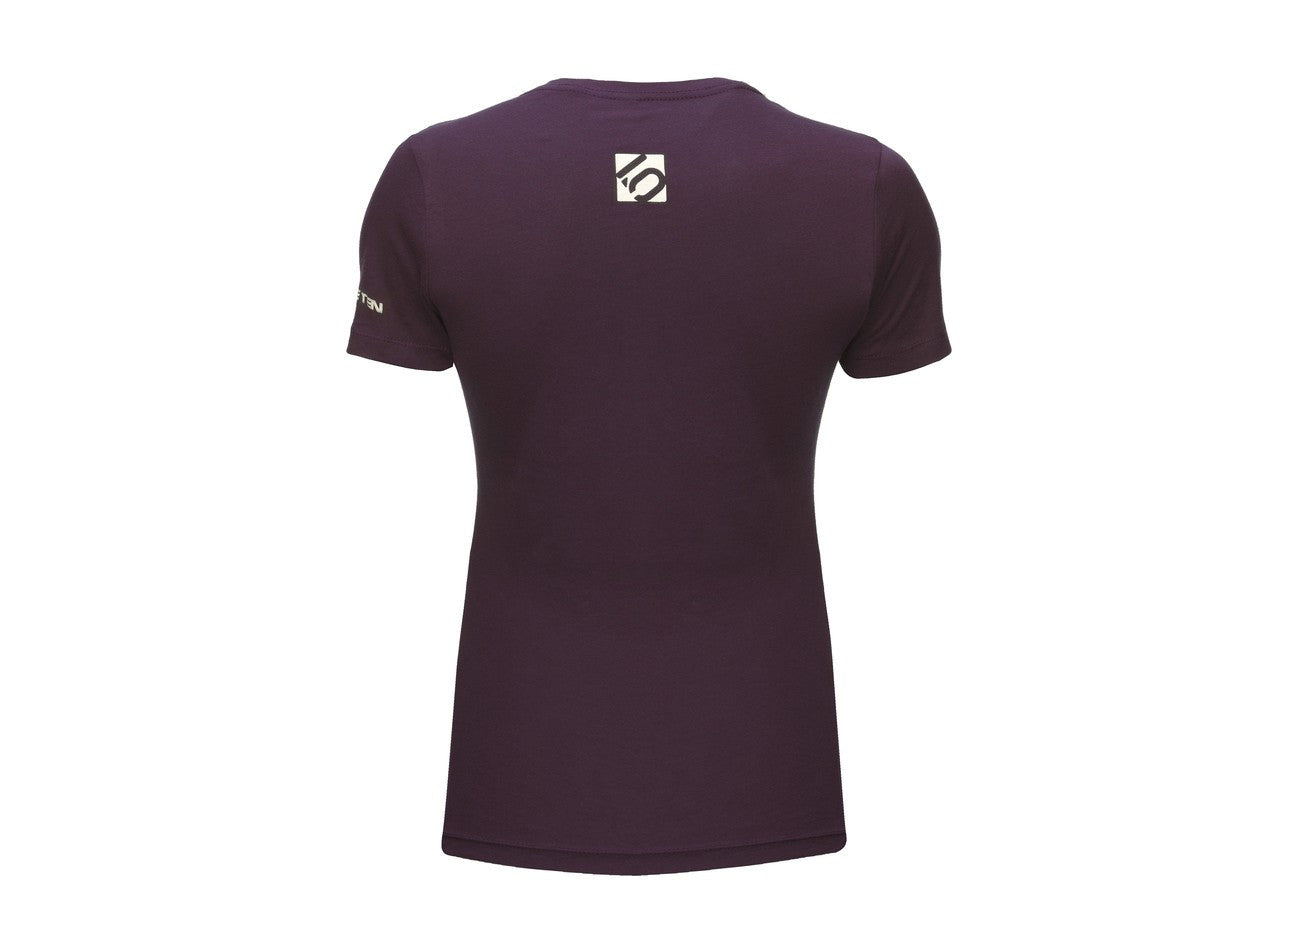 Logo T-Shirt - Plum by Fiveten